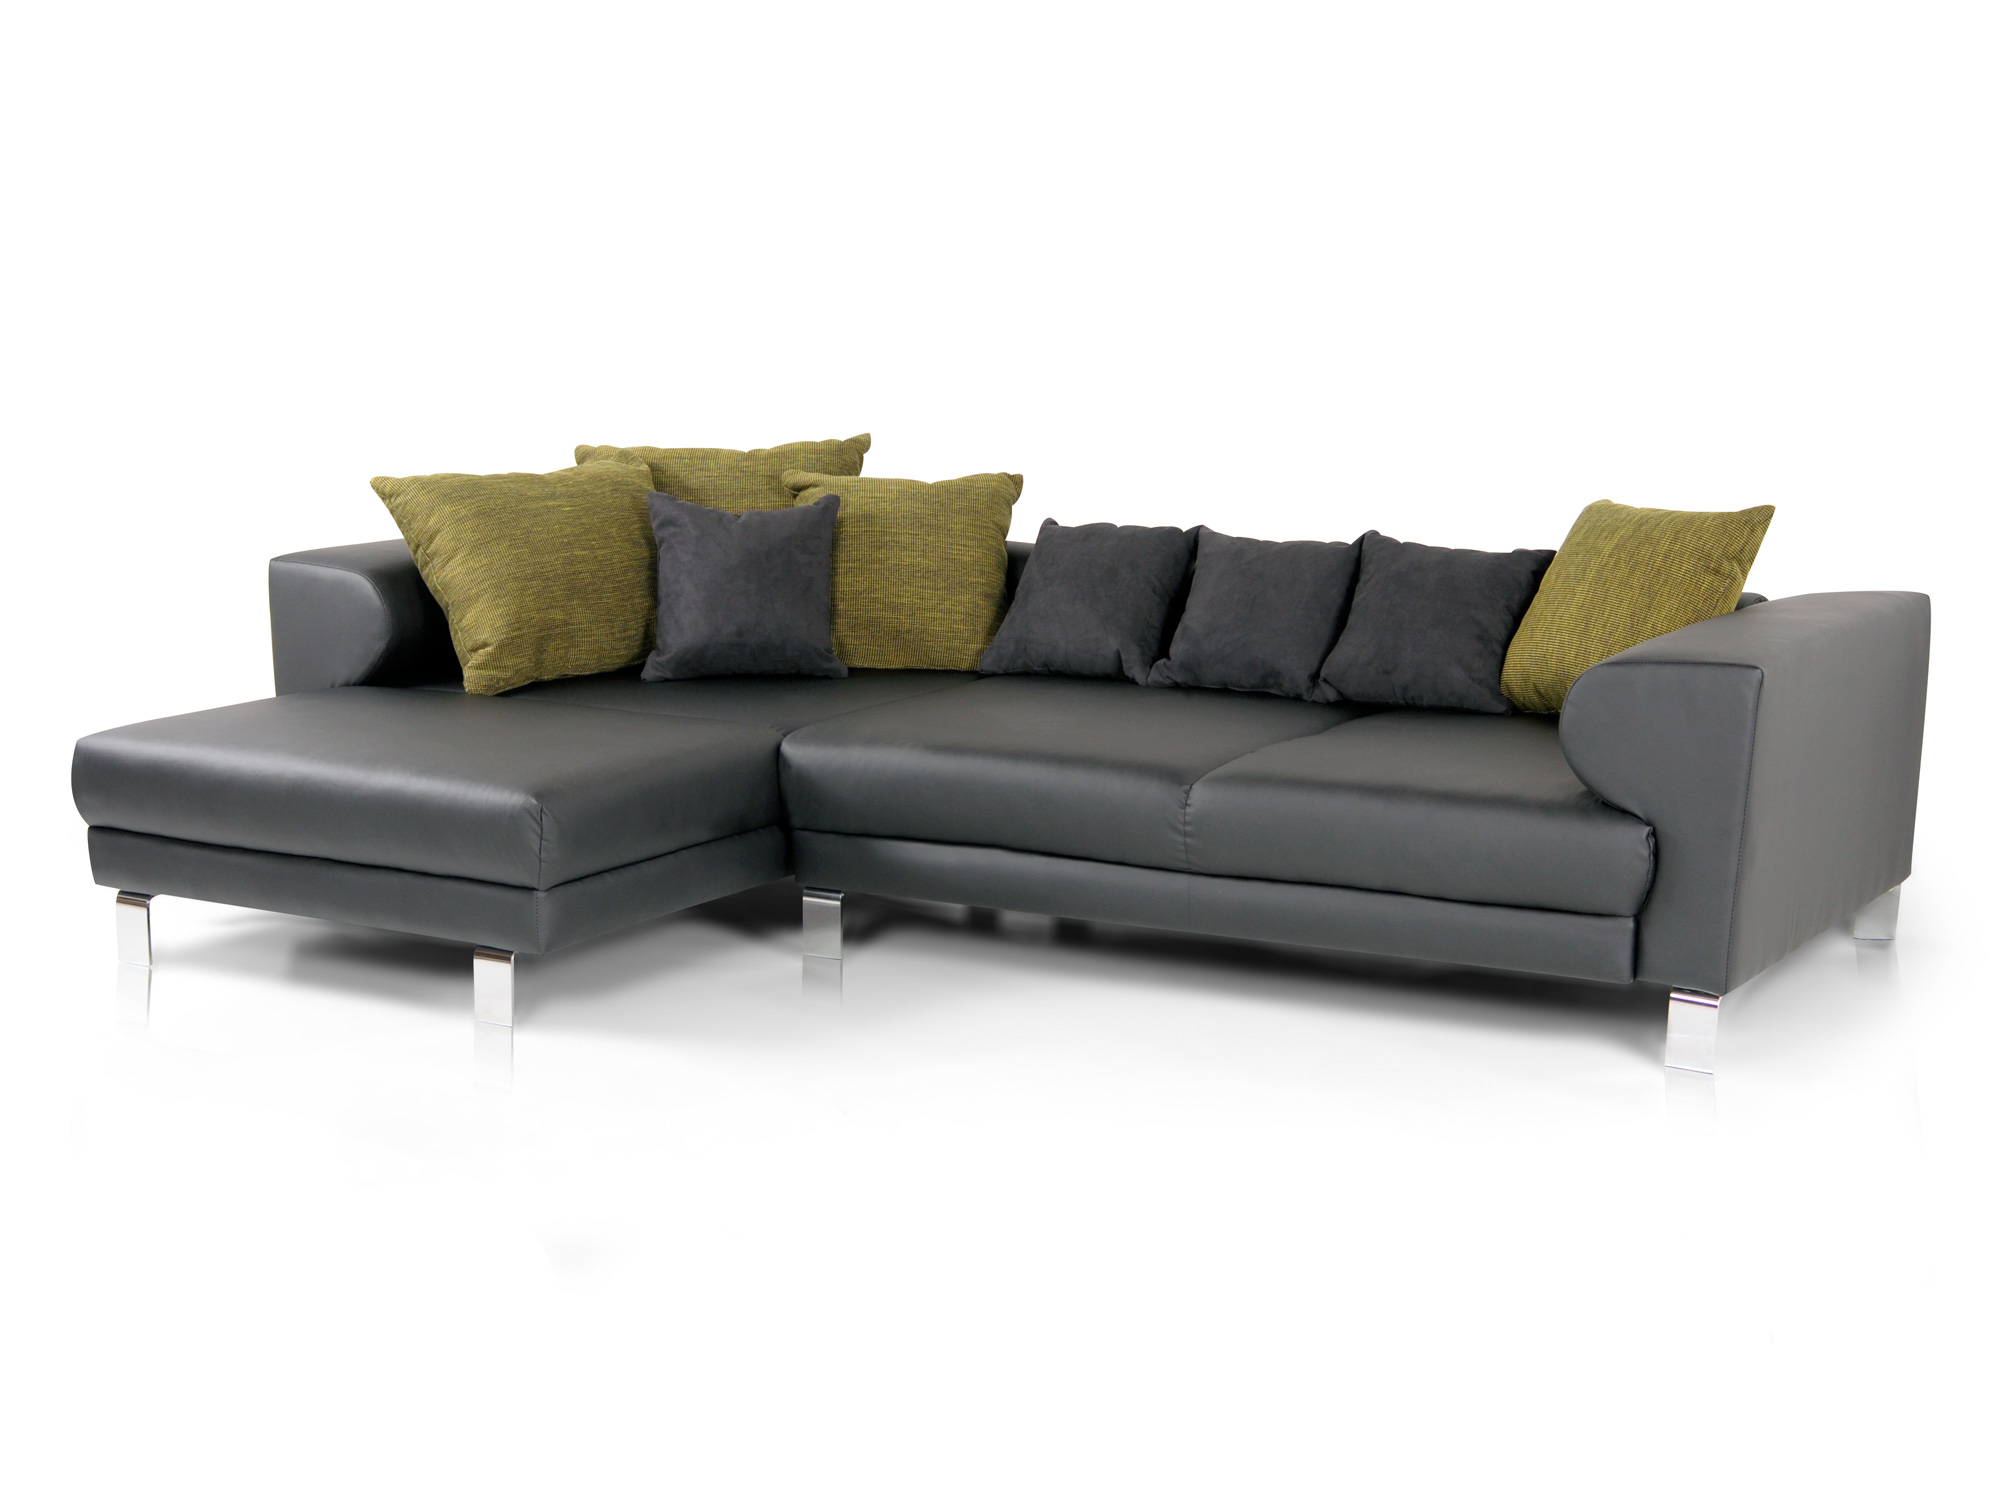 folke sofa kunstleder schwarz ottomane links. Black Bedroom Furniture Sets. Home Design Ideas